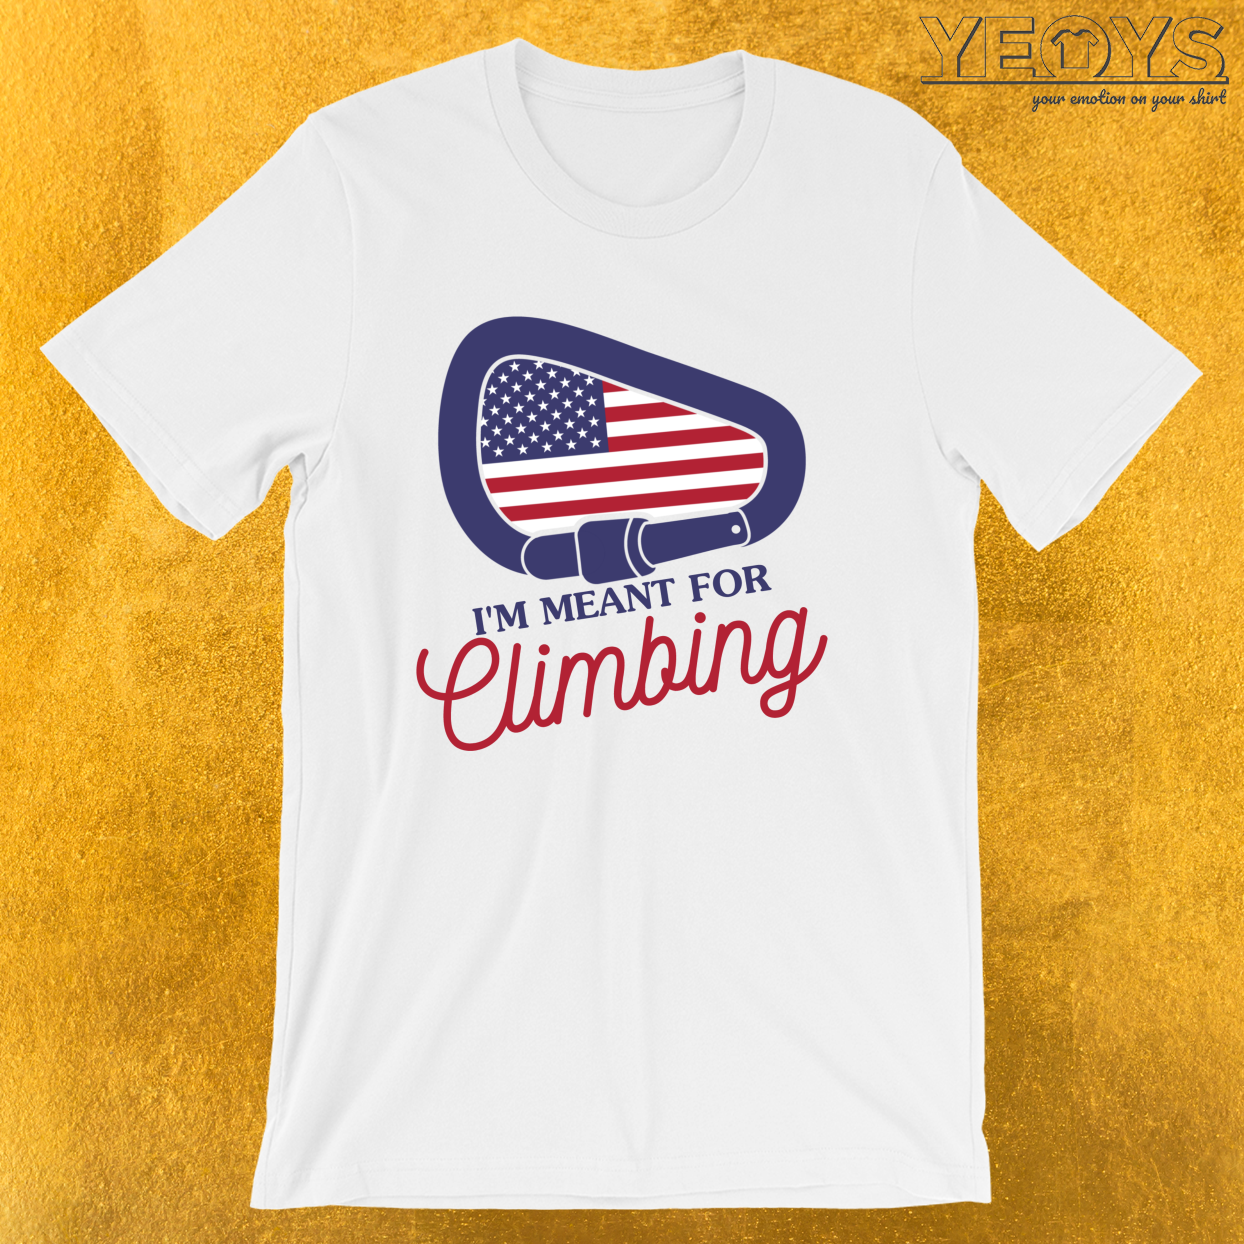 I'm Meant For Climbing – USA Climbing Tee